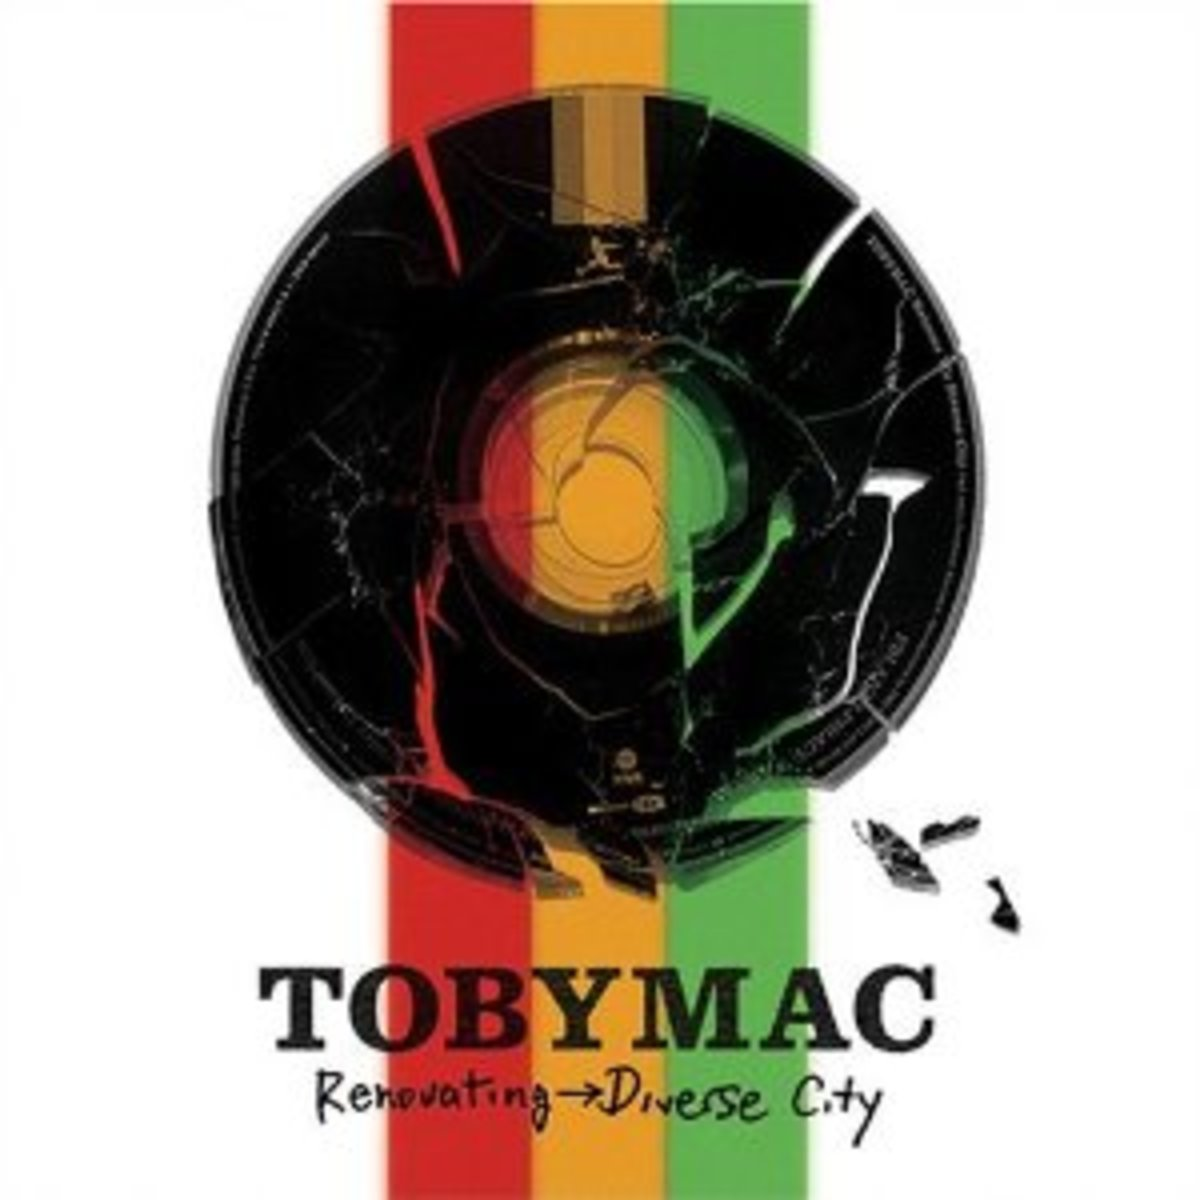 tobymacs-ill-m-i-song-meaning